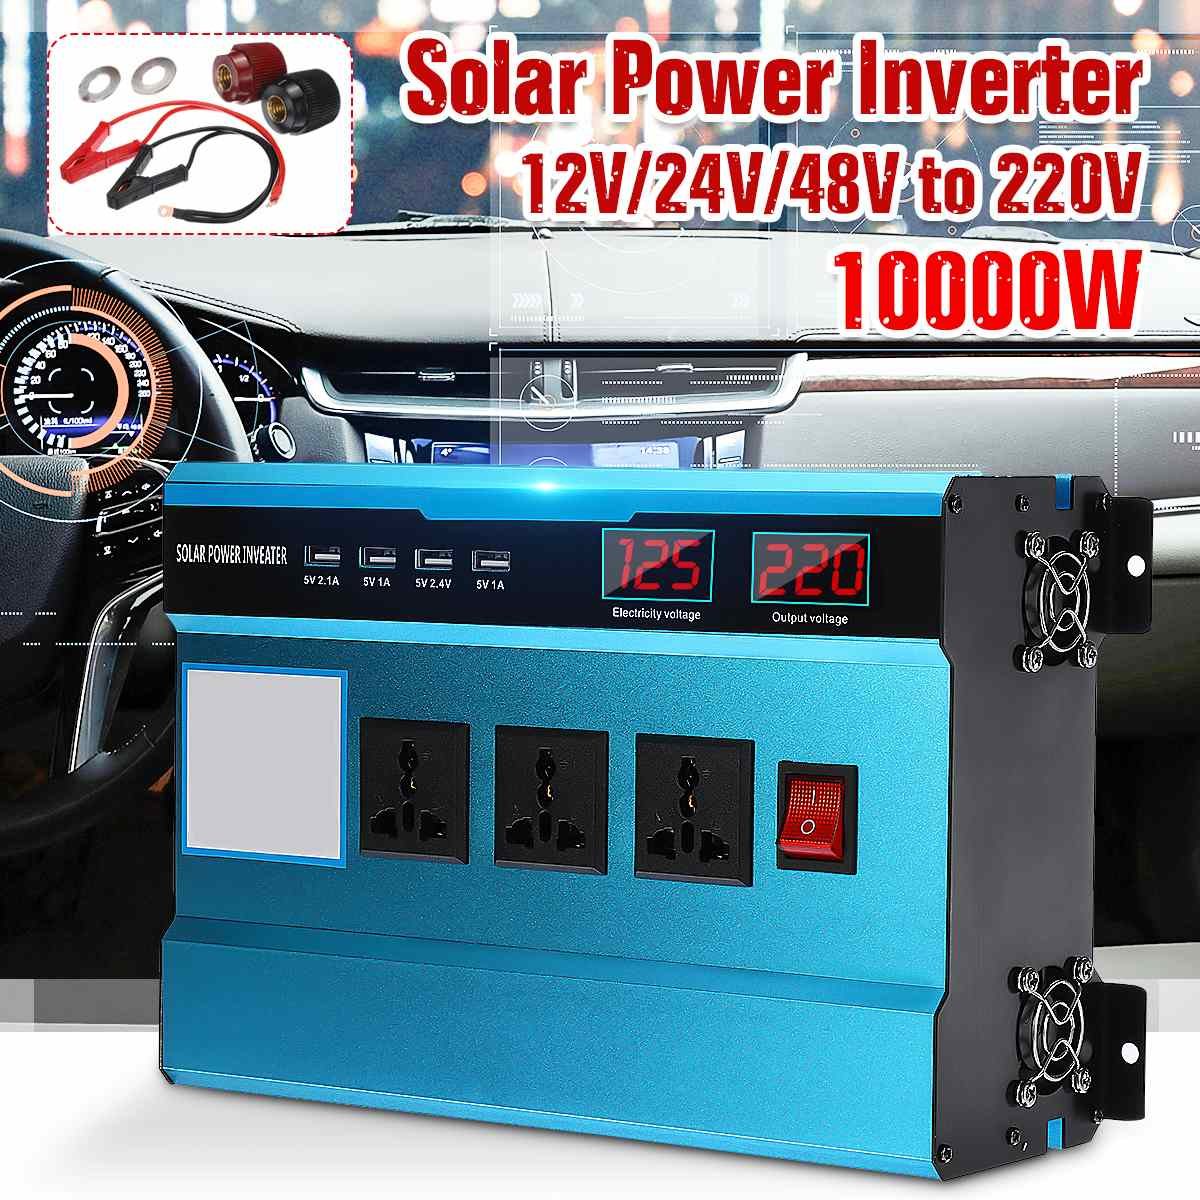 Car Solar Power Inverter 12V 24V 220V 10000W P Eak Power Sine Wave Inverter With Fan 3 Charger Voltage Transformer Converter